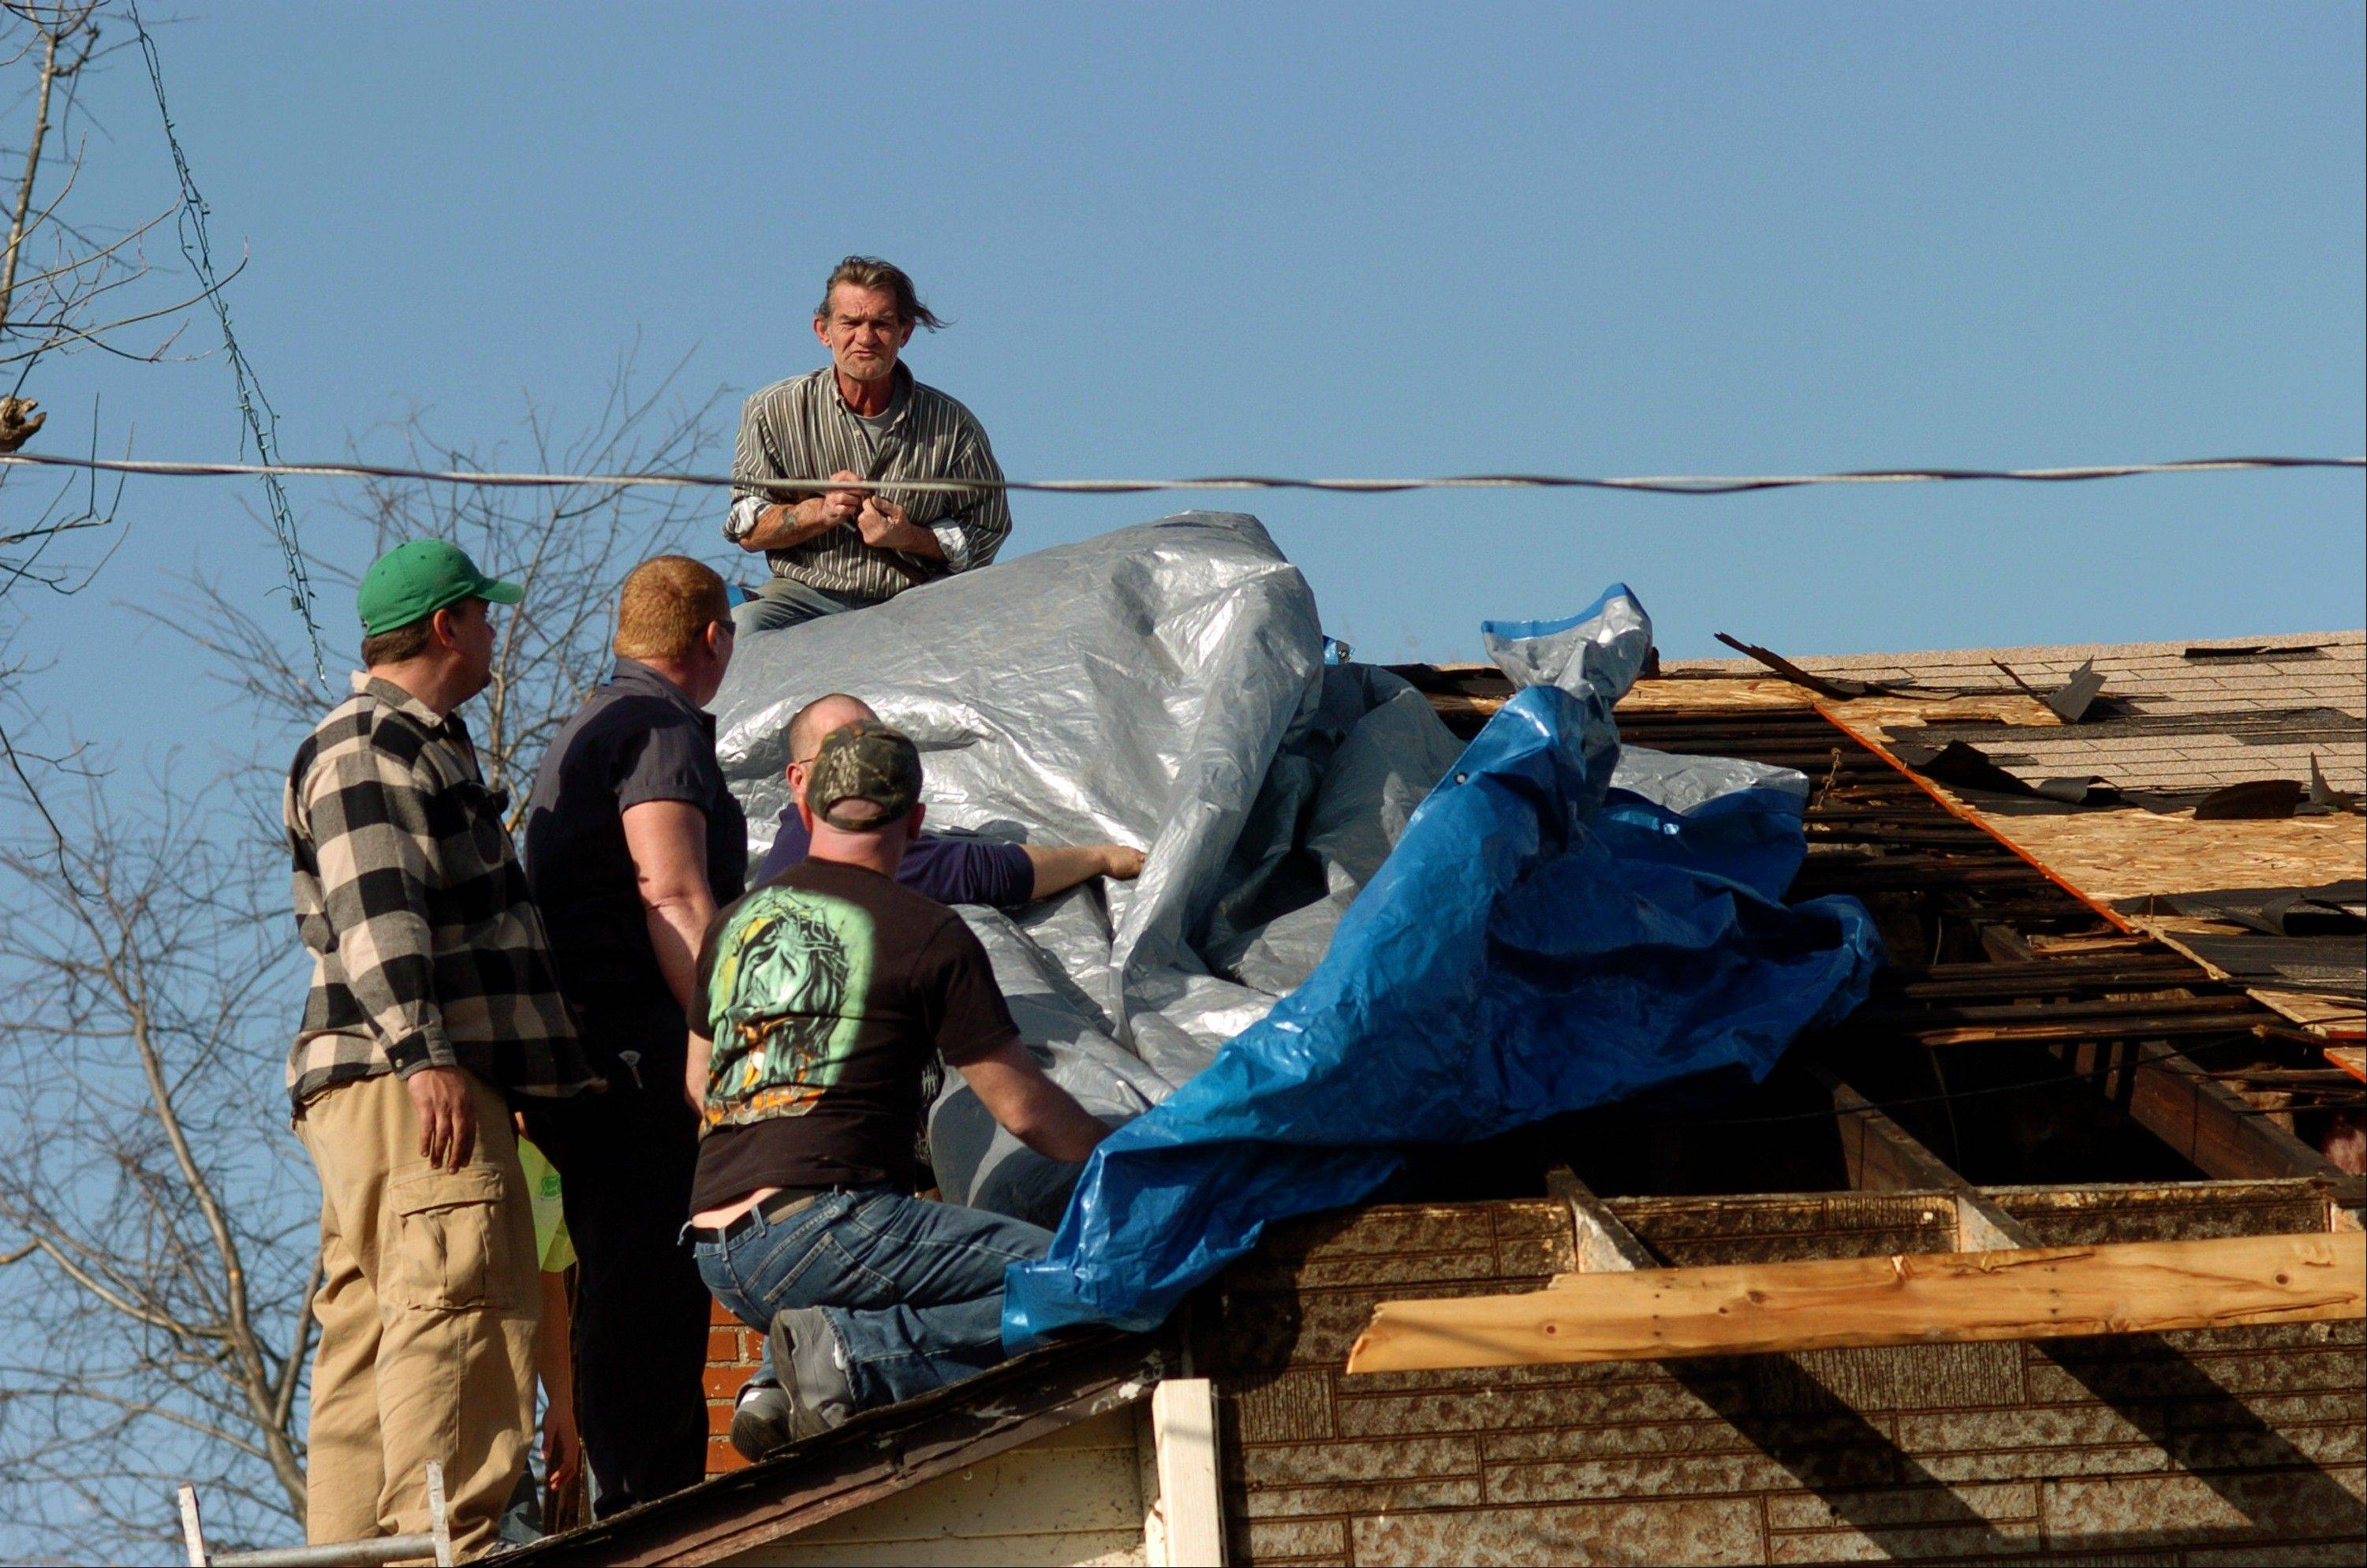 Volunteers use a tarp to cover the roof of the home of Edith Raynes, 86, in Harrisburg, Ill., Wednesday, Feb. 29, 2012. The tornado that blasted Harrisburg in southern Illinois, killing six, was an EF4, the second-highest rating given to twisters based on damage. Scientists said it was 200 yards wide with winds up to 170 mph.